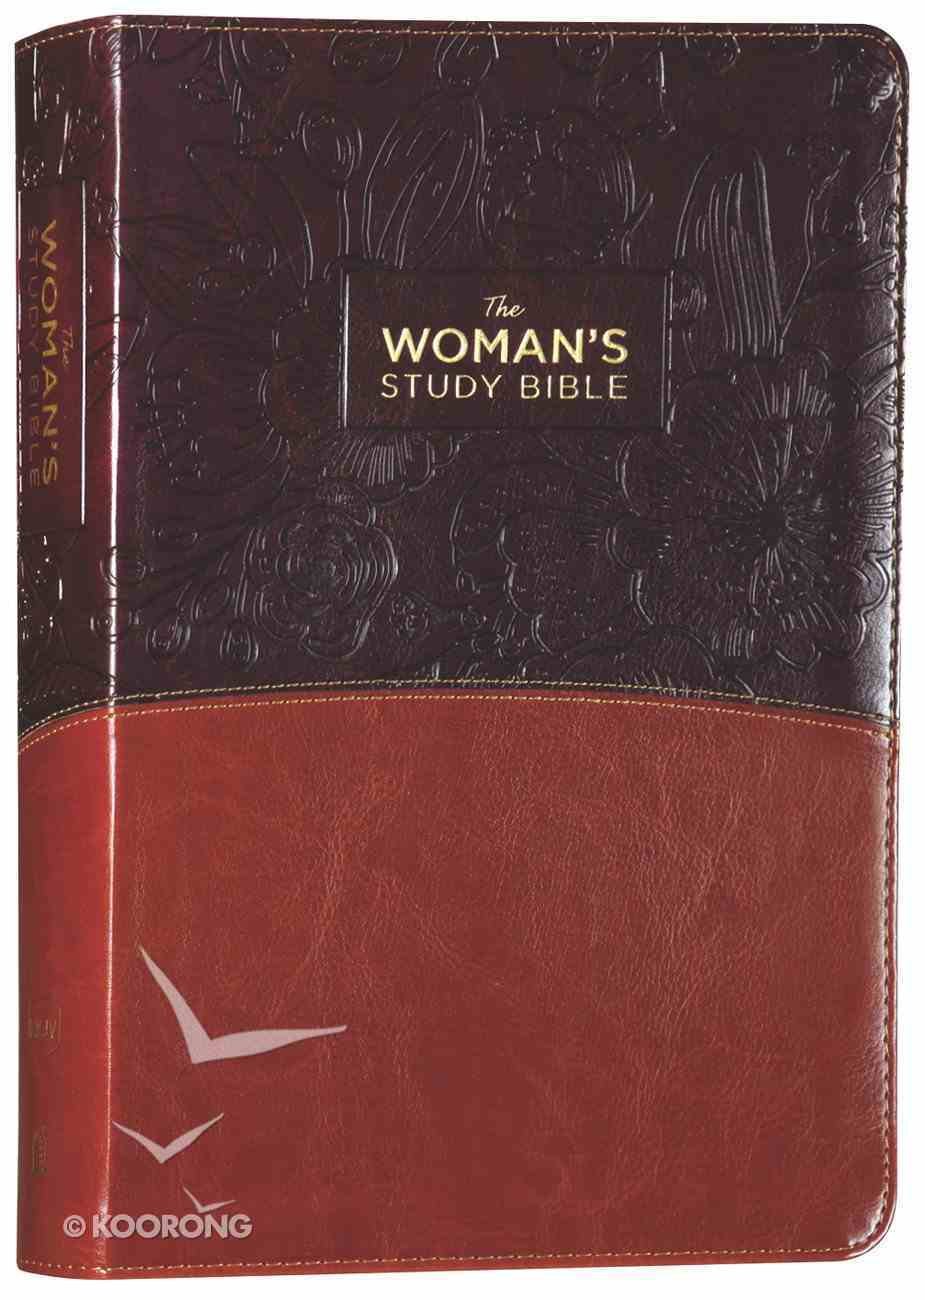 NKJV the Woman's Study Bible Brown/Burgundy Full-Color Fully Revised Imitation Leather